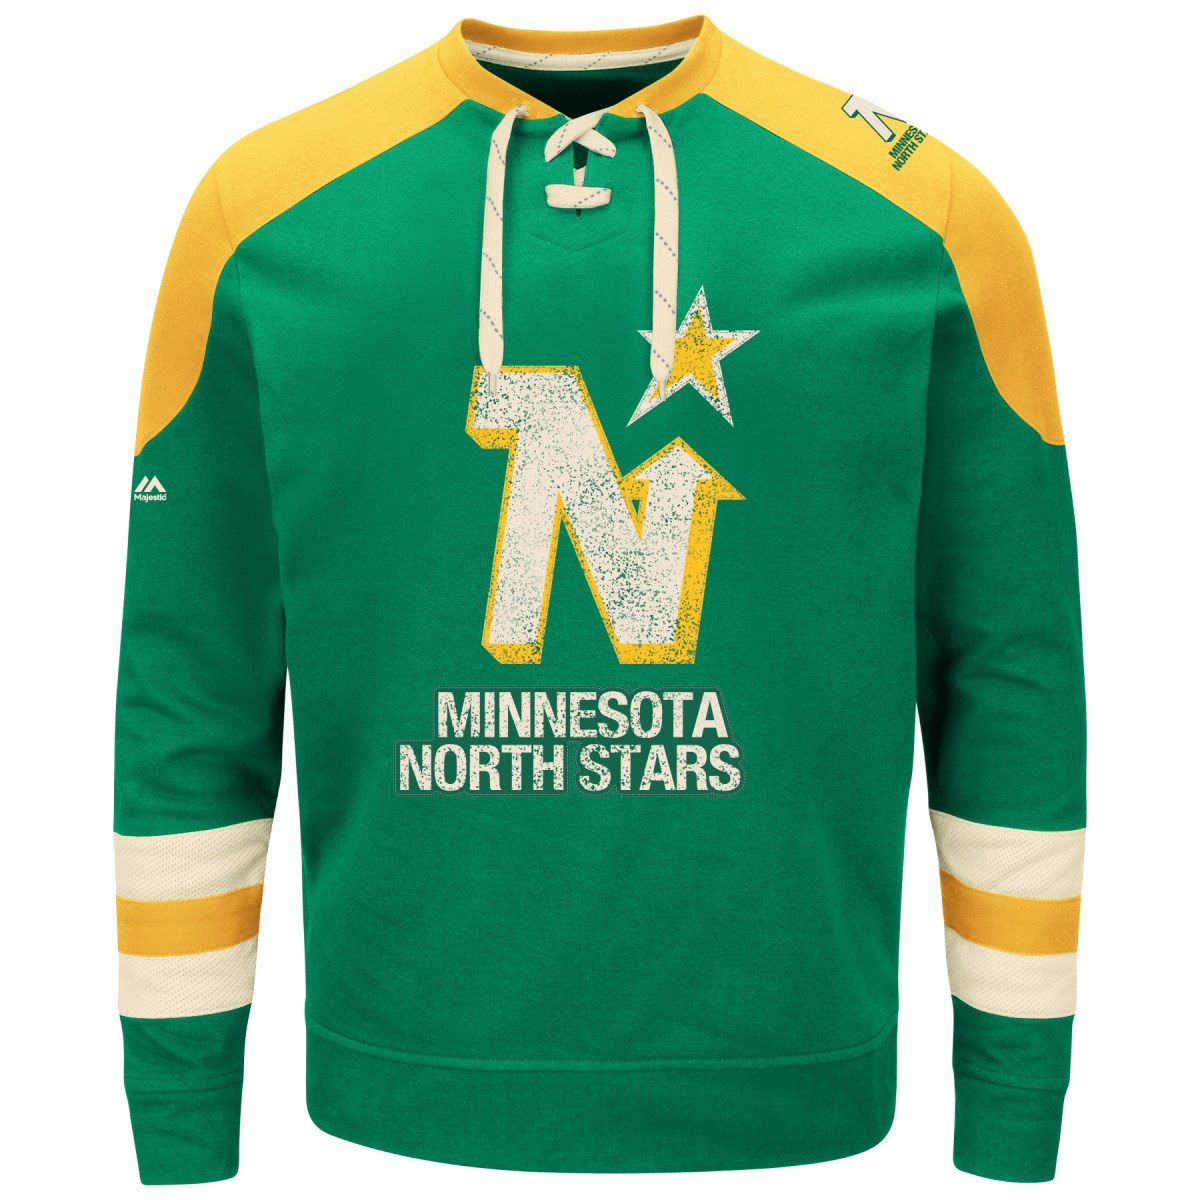 Minnesota North Stars Majestic NHL Vintage Centre Men's Pullover Crew Sweatshirt